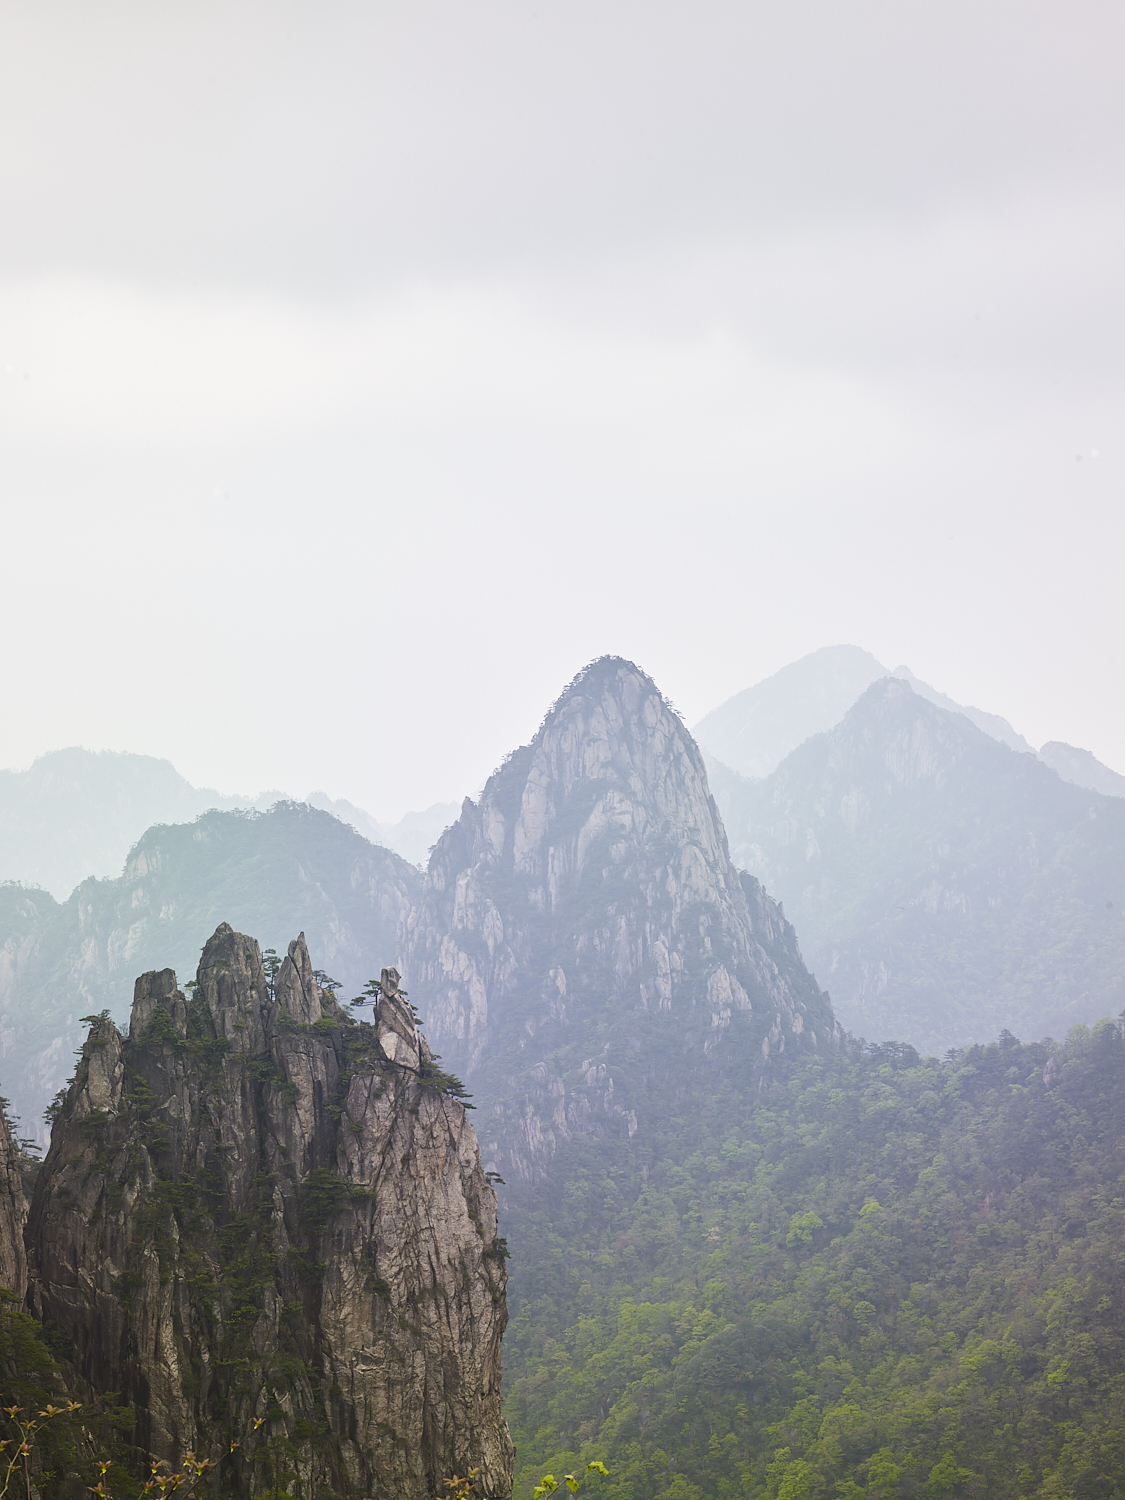 Huangshan Mountain, China, 2017